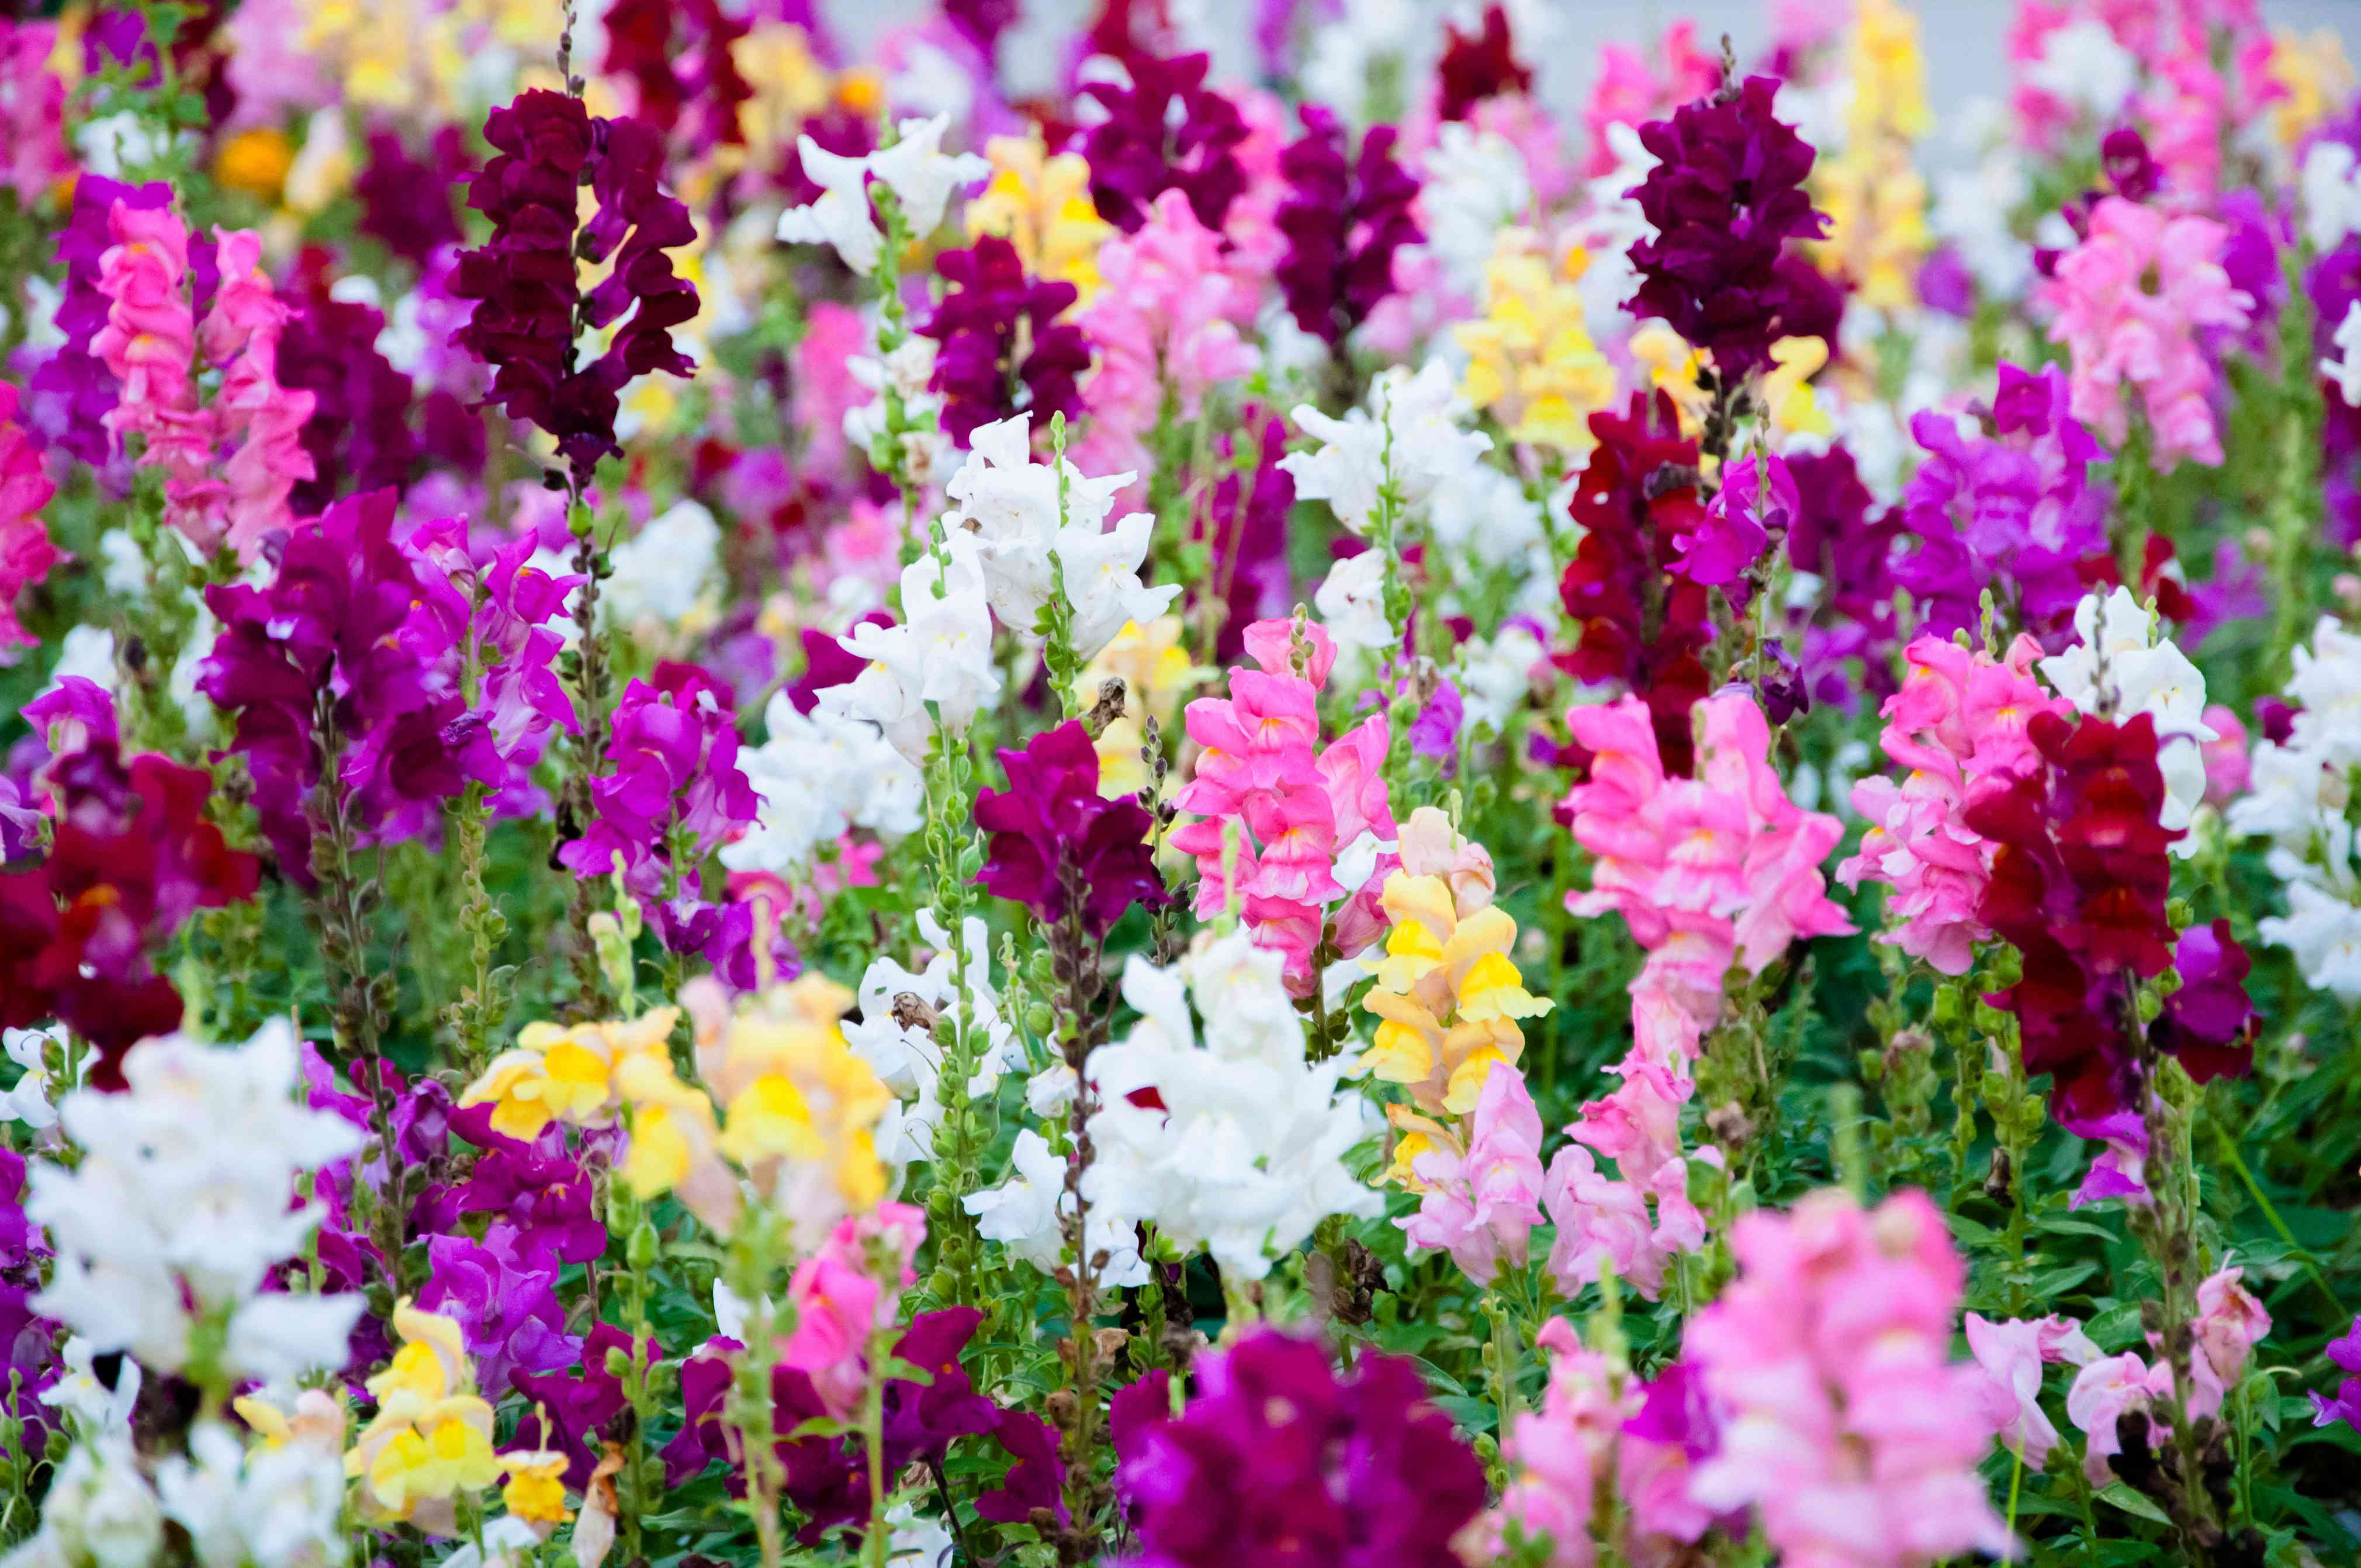 Colorful snapdragons in a garden.